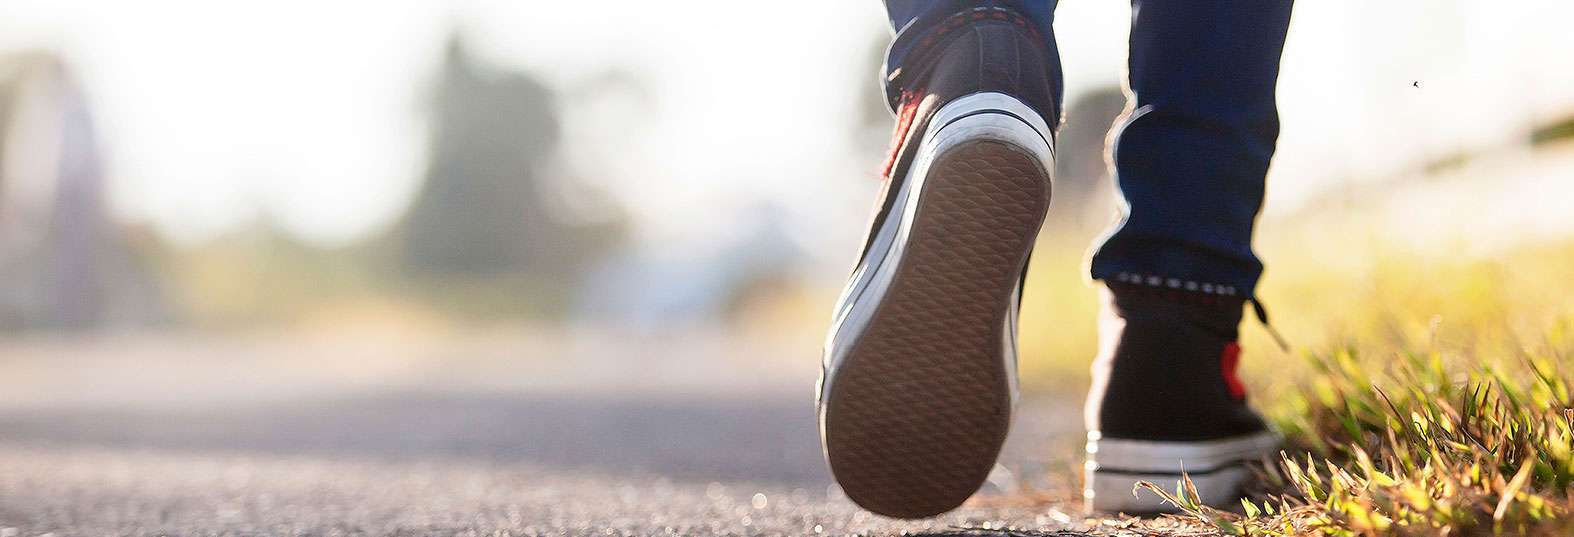 412ecc895 Many people firmly believe that trainers are extremely foot-friendly and a  healthy choice of footwear. That